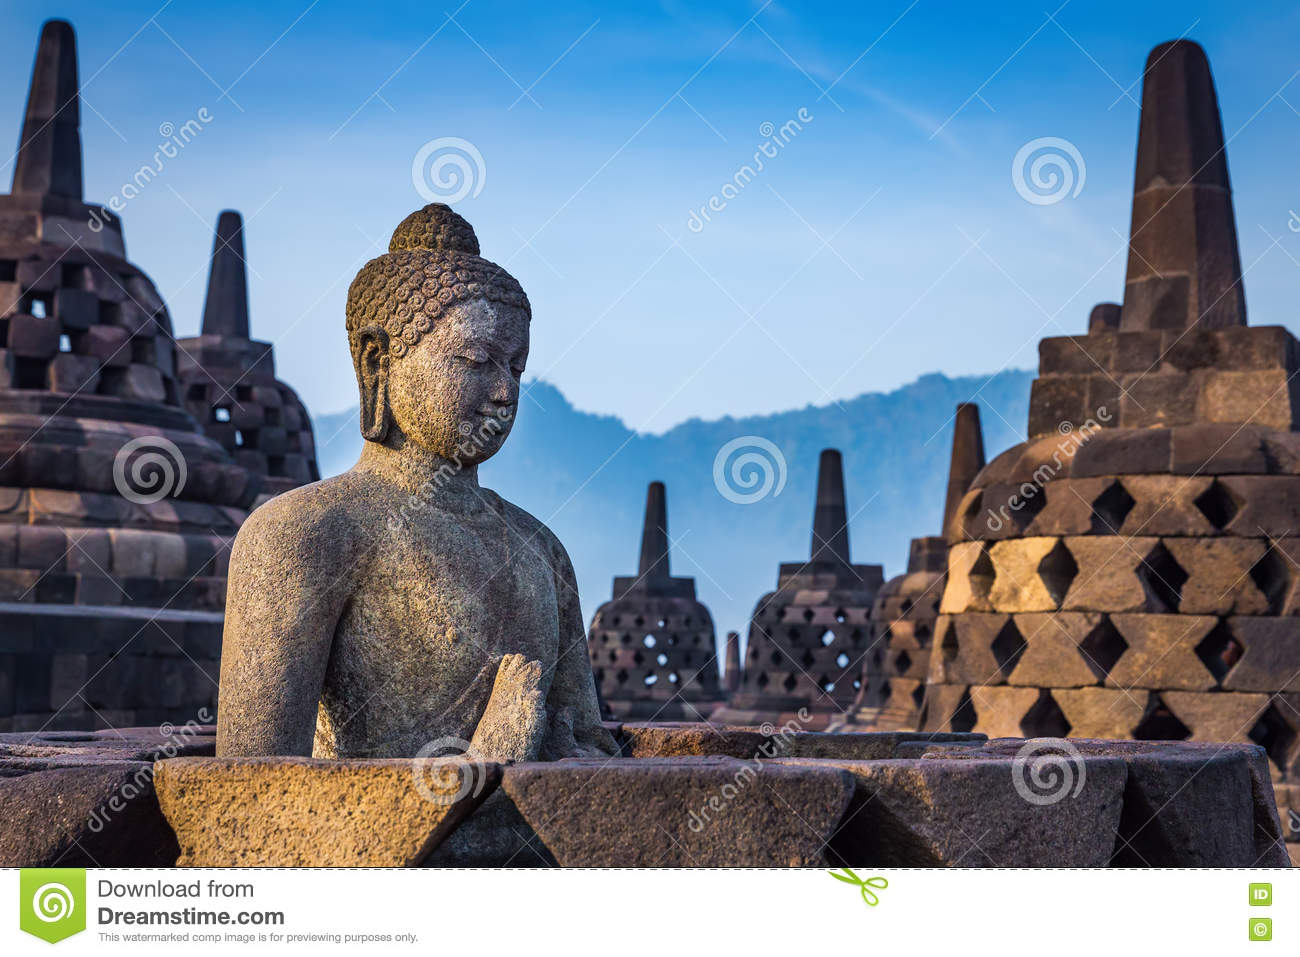 Buddha statue in Borobudur Temple, Indonesia.